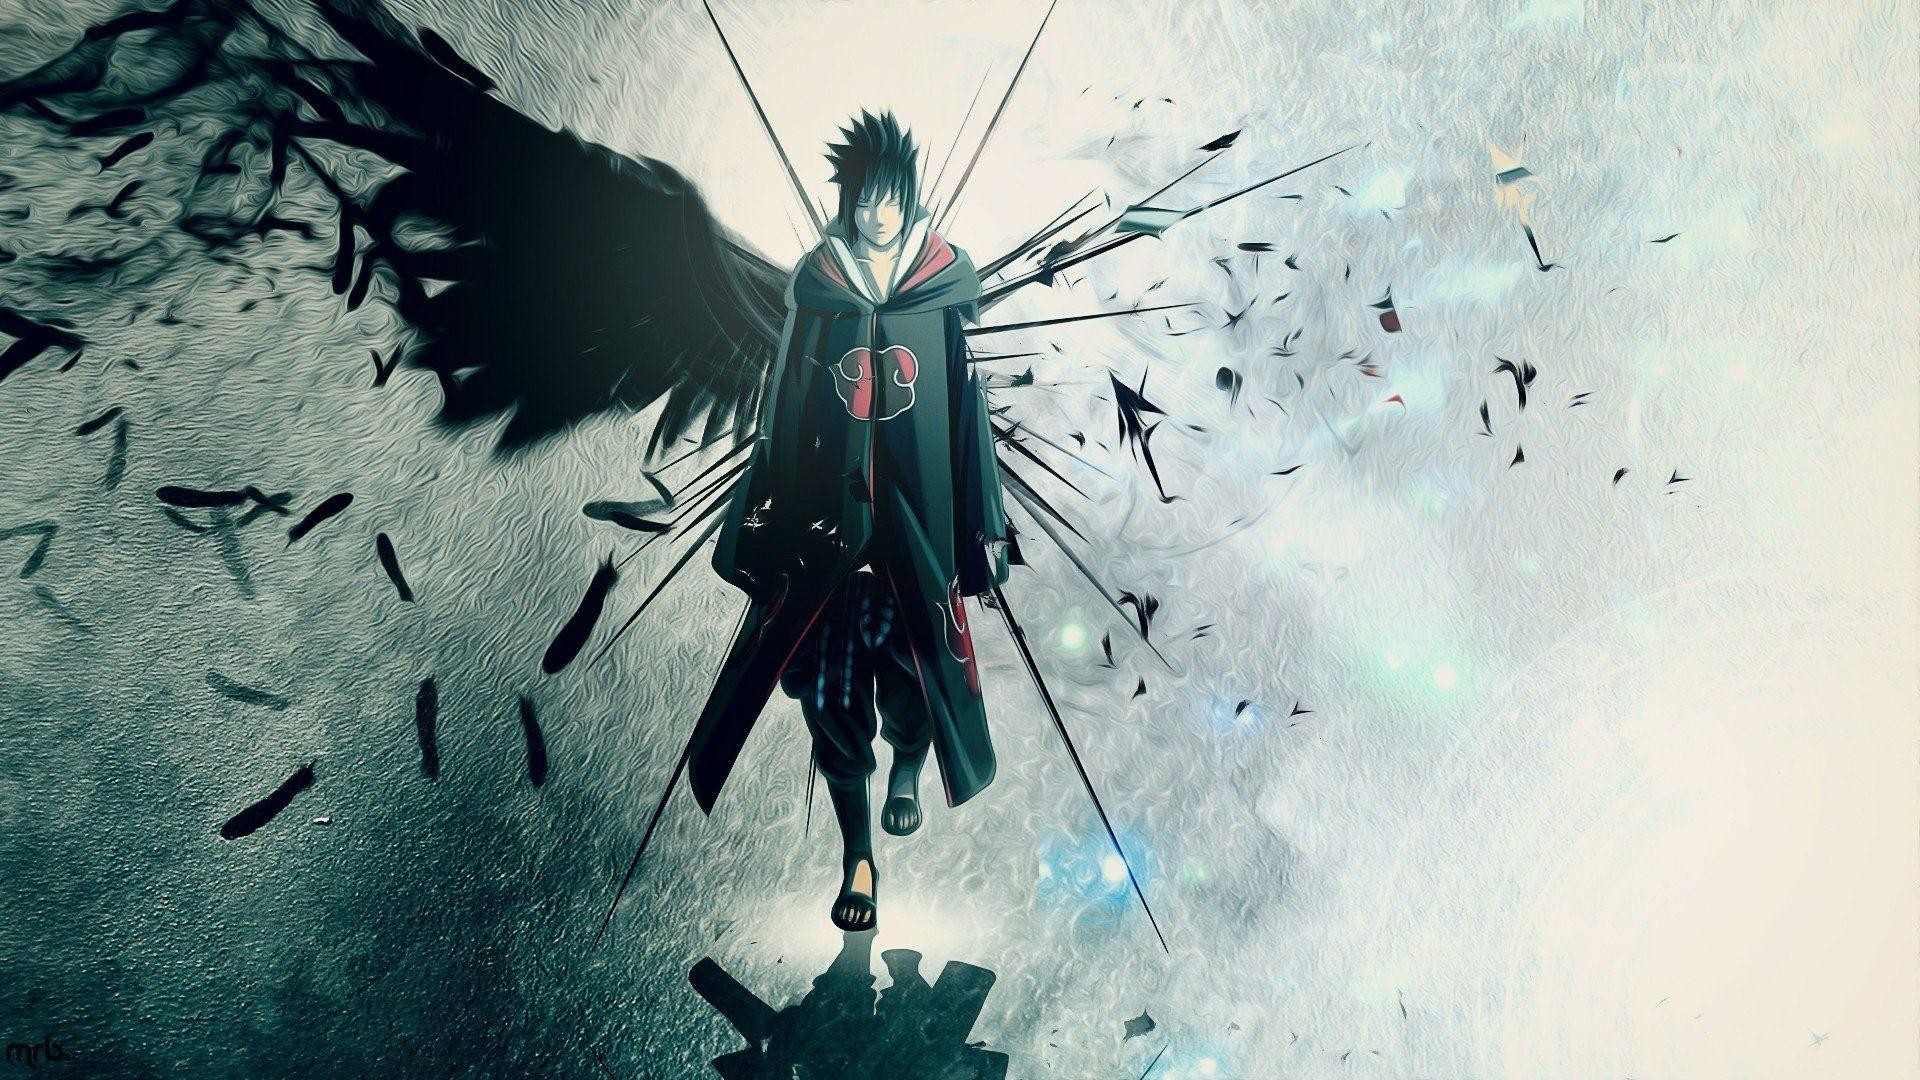 10 best epic dark anime wallpaper full hd 1080p for pc - Best site to download anime wallpapers ...